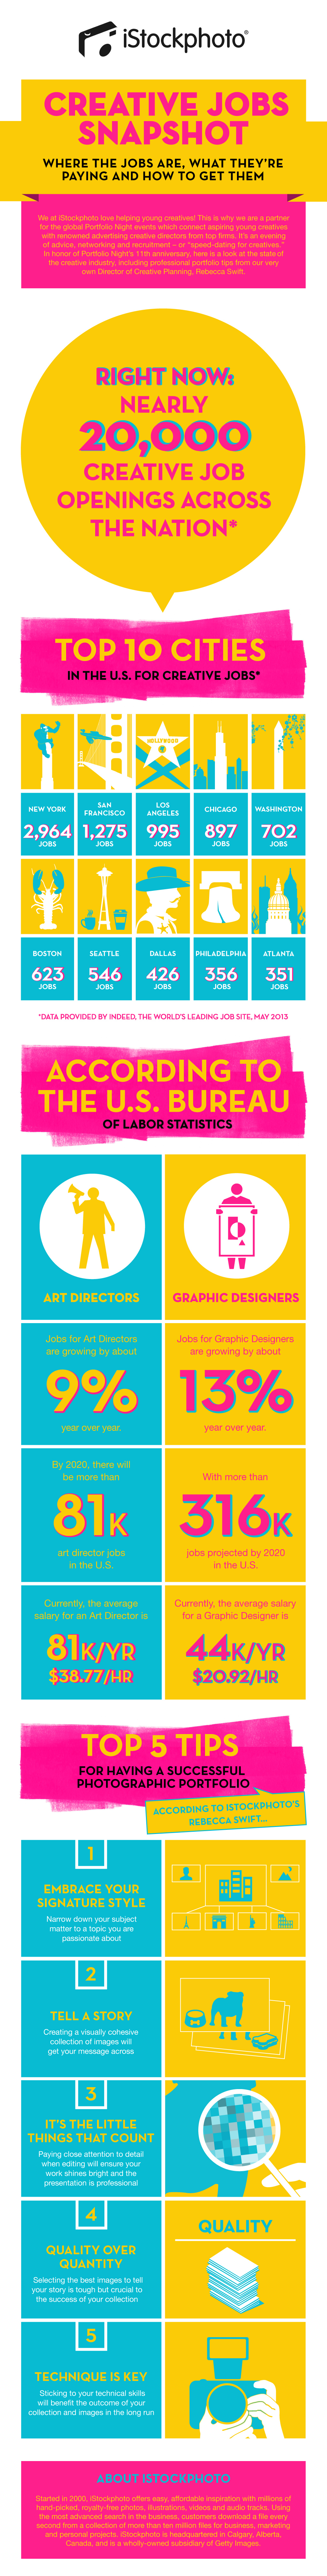 Pin By Madison Rogers On Career Advice Creative Jobs Infographic Marketing Infographic